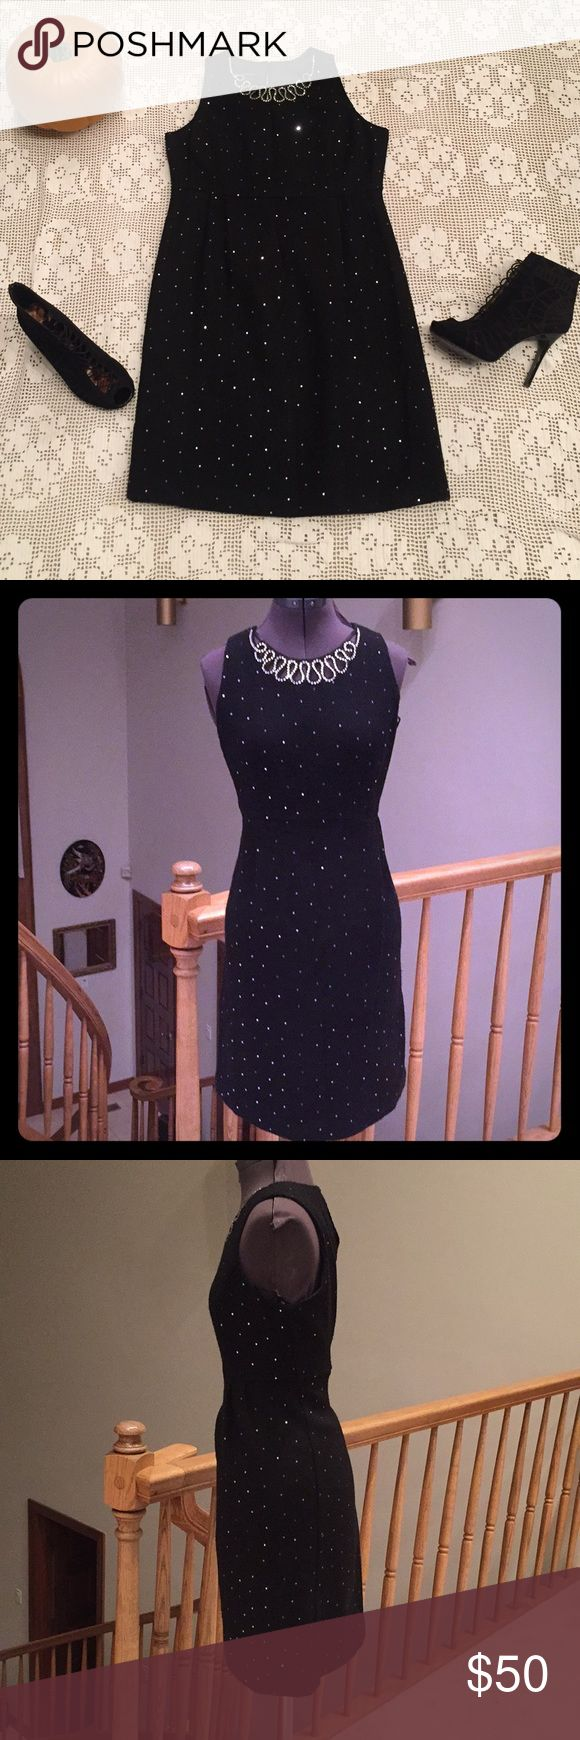 Holiday Sparkle Black & Silver Dress Holiday Sparkle Black & Silver Dress, sparkly black and silver dress, detailed jewels at the neck, absolutely beautiful on, wool like material, smoke free and pet free home, in PERFECT CONDITION, size 10, I.N.C brand INC International Concepts Dresses Midi